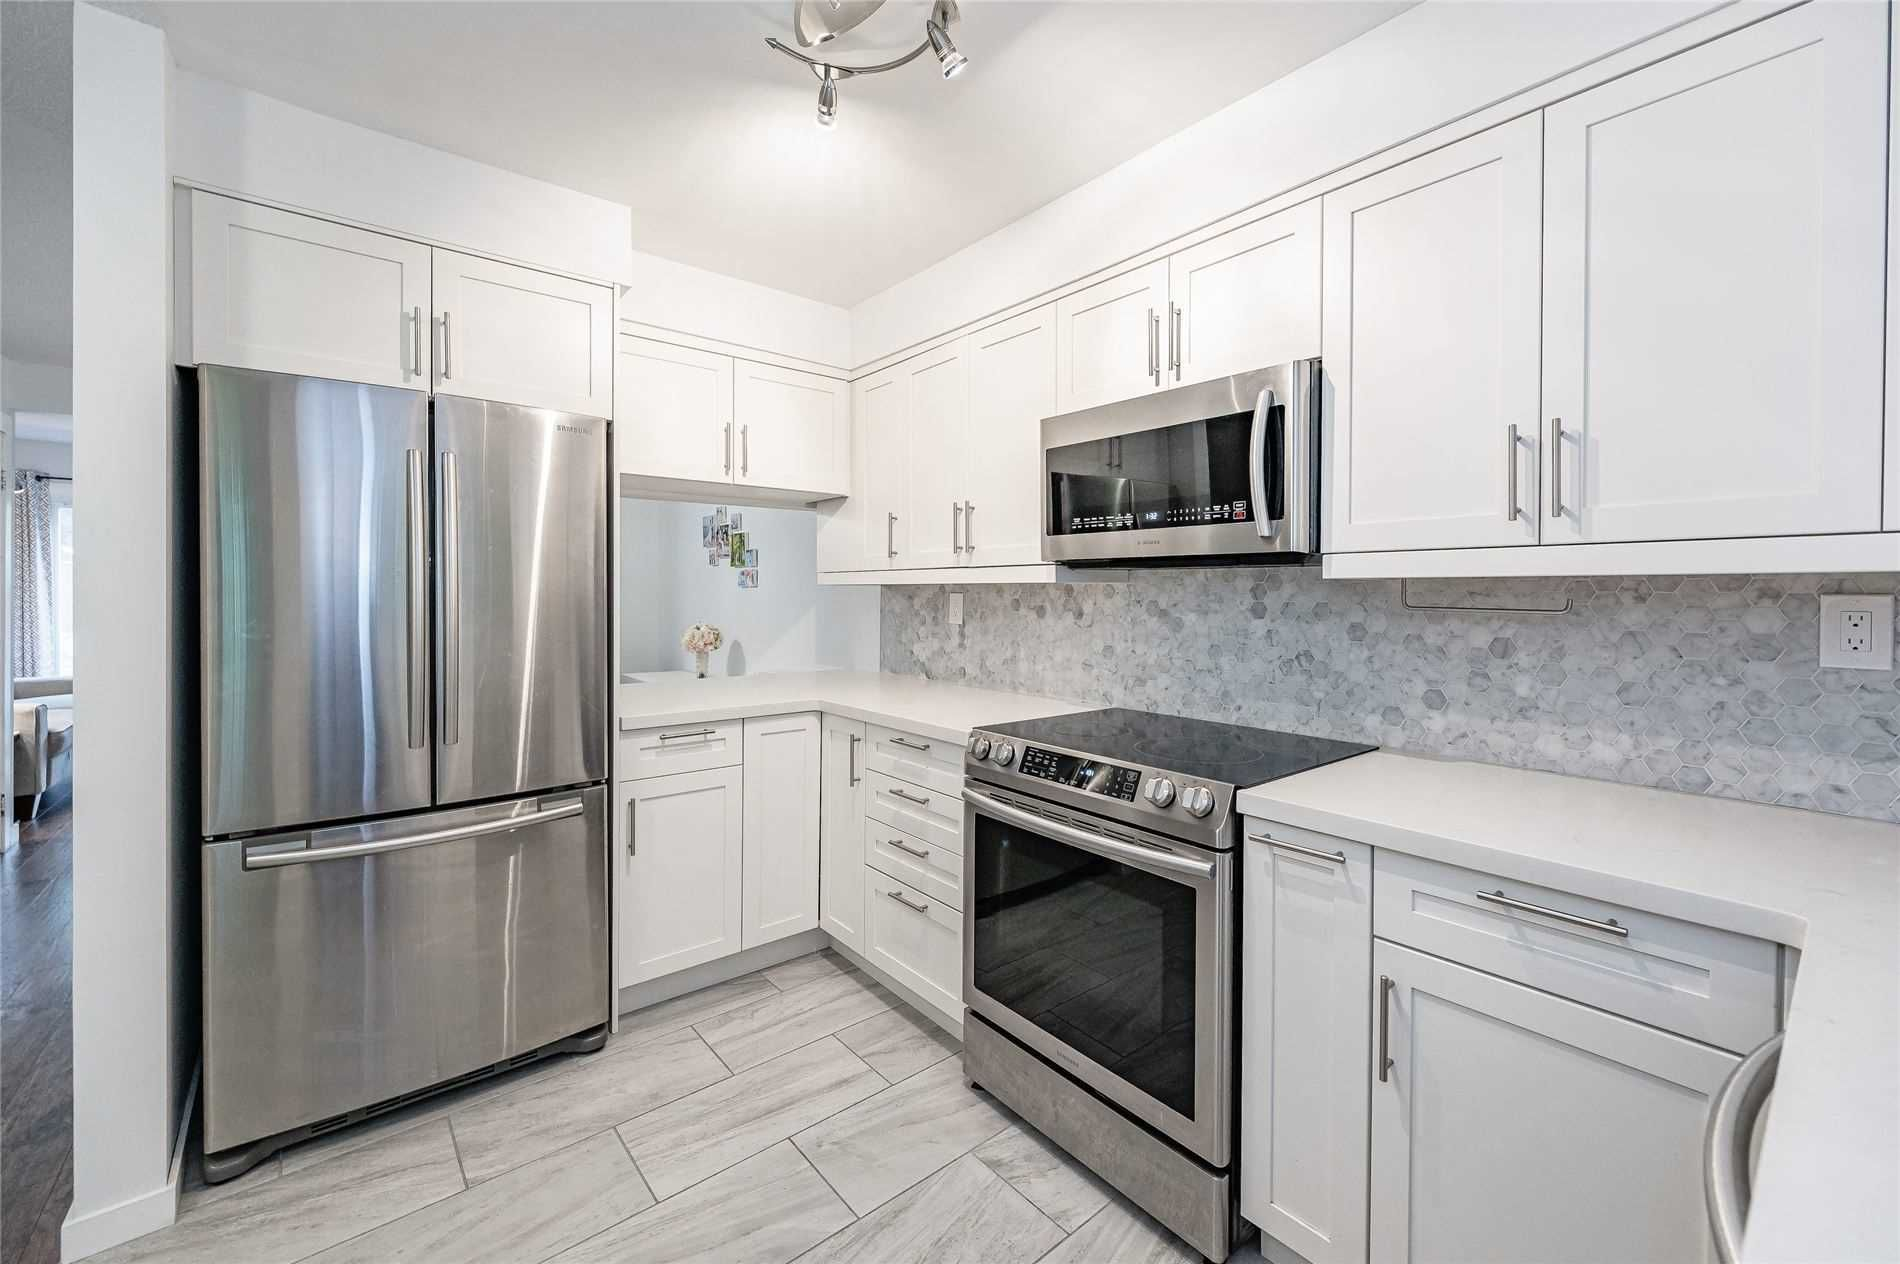 2065 Amherst Heights Crt, unit 26 for sale in Toronto - image #1